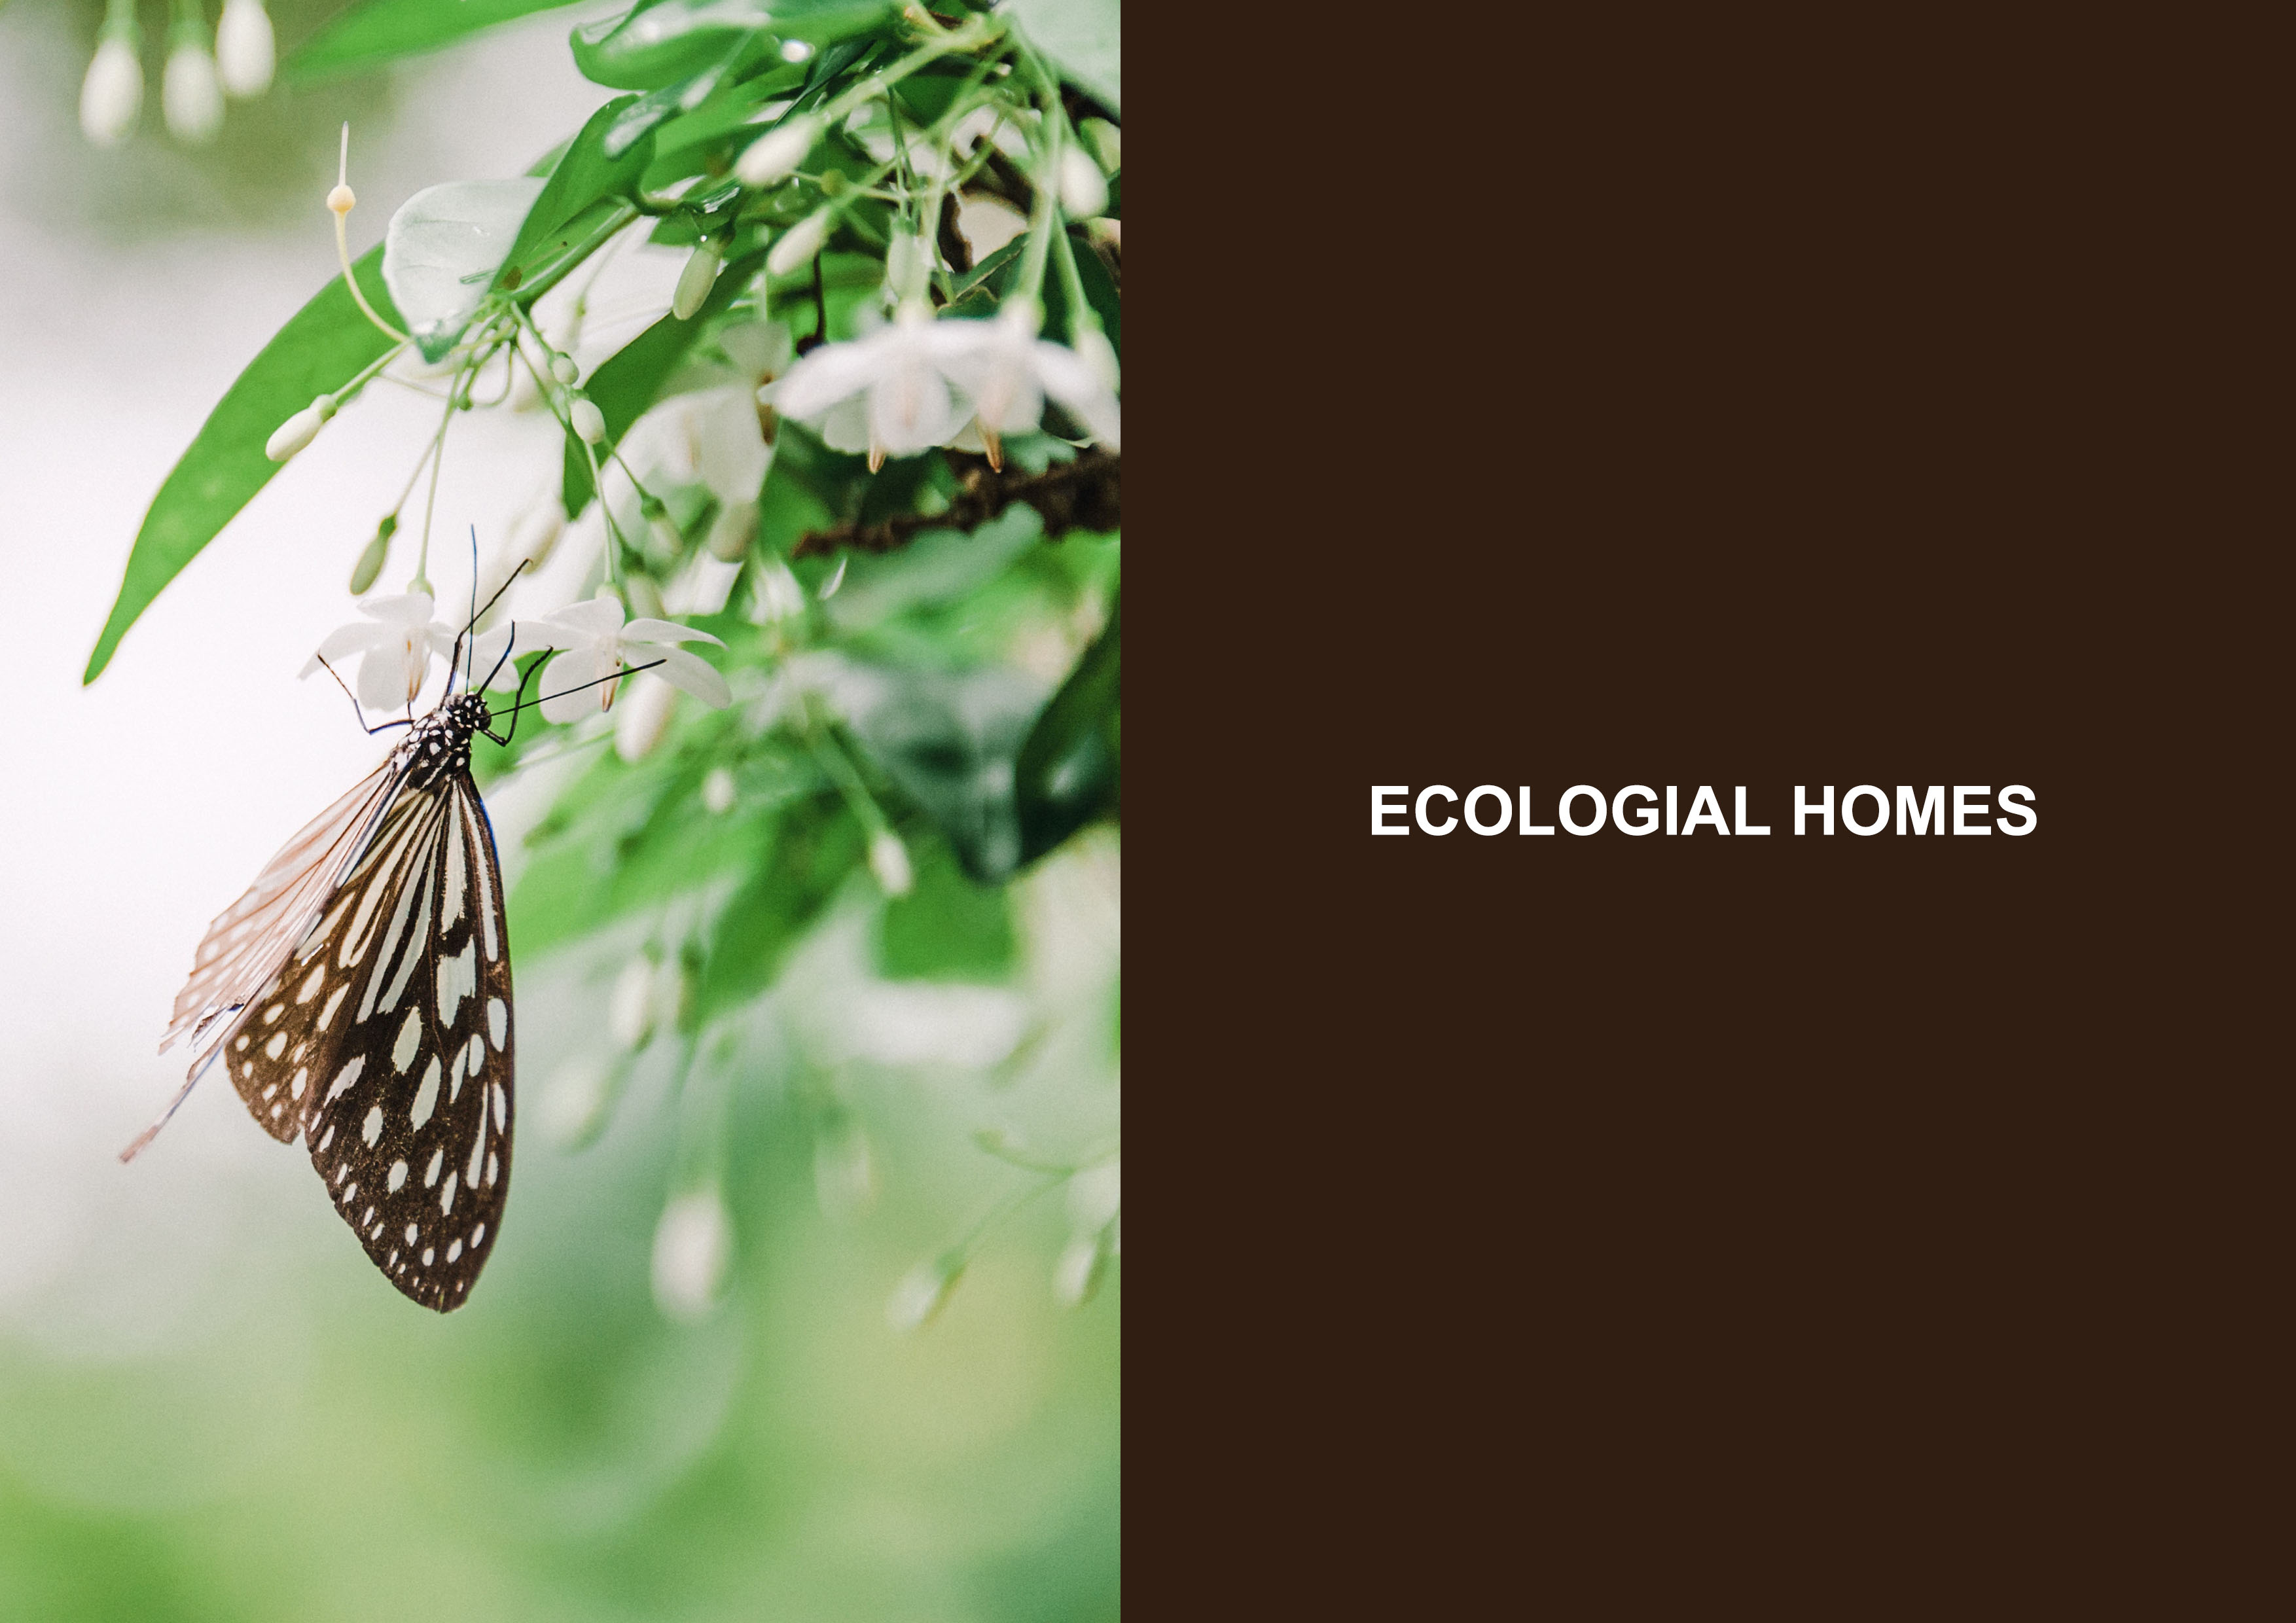 Ecological Homes